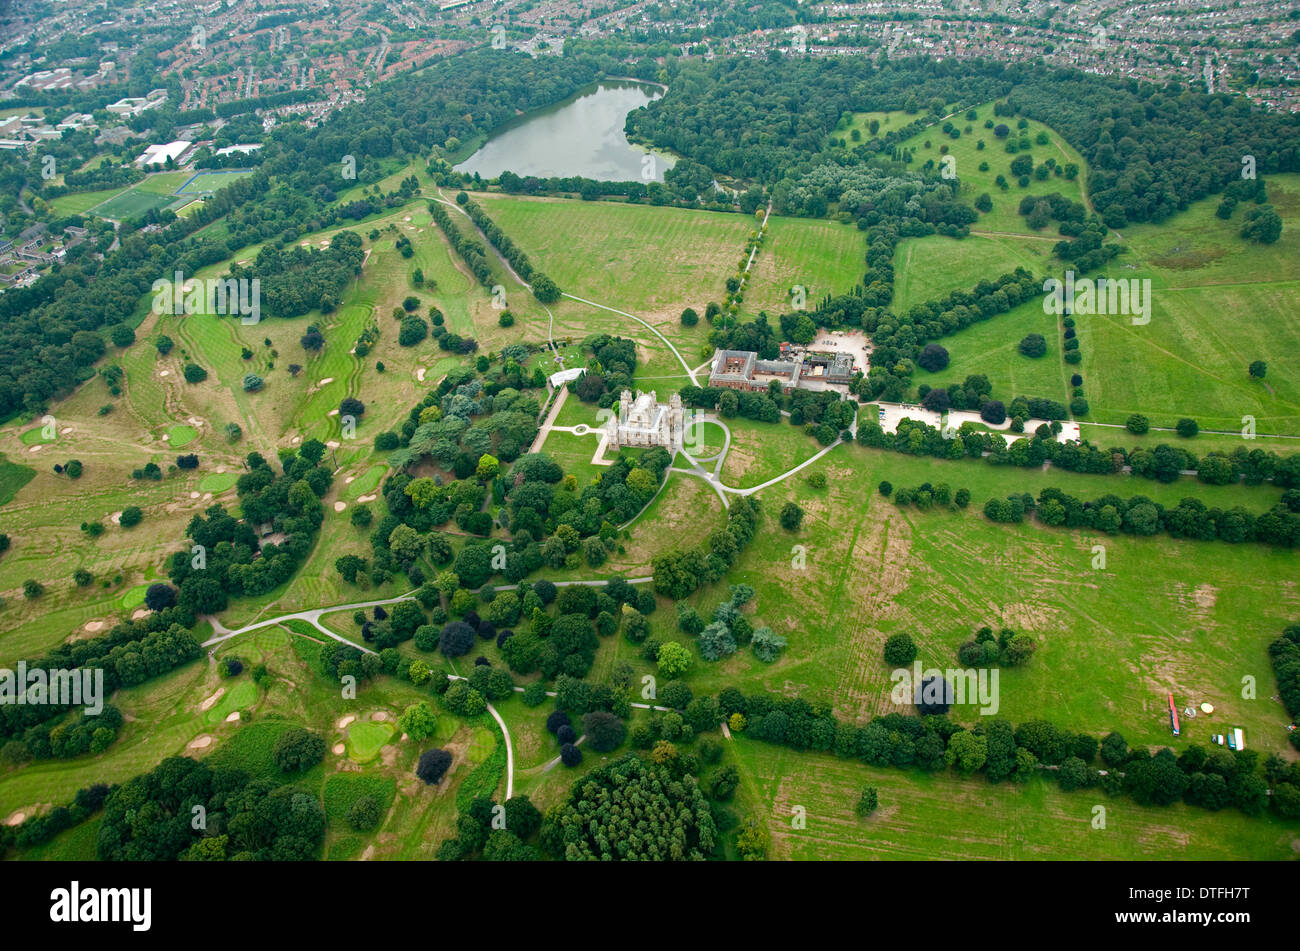 Aerial shot of Wollaton Hall and Deer Park in Nottingham, Nottinghamshire UK - Stock Image